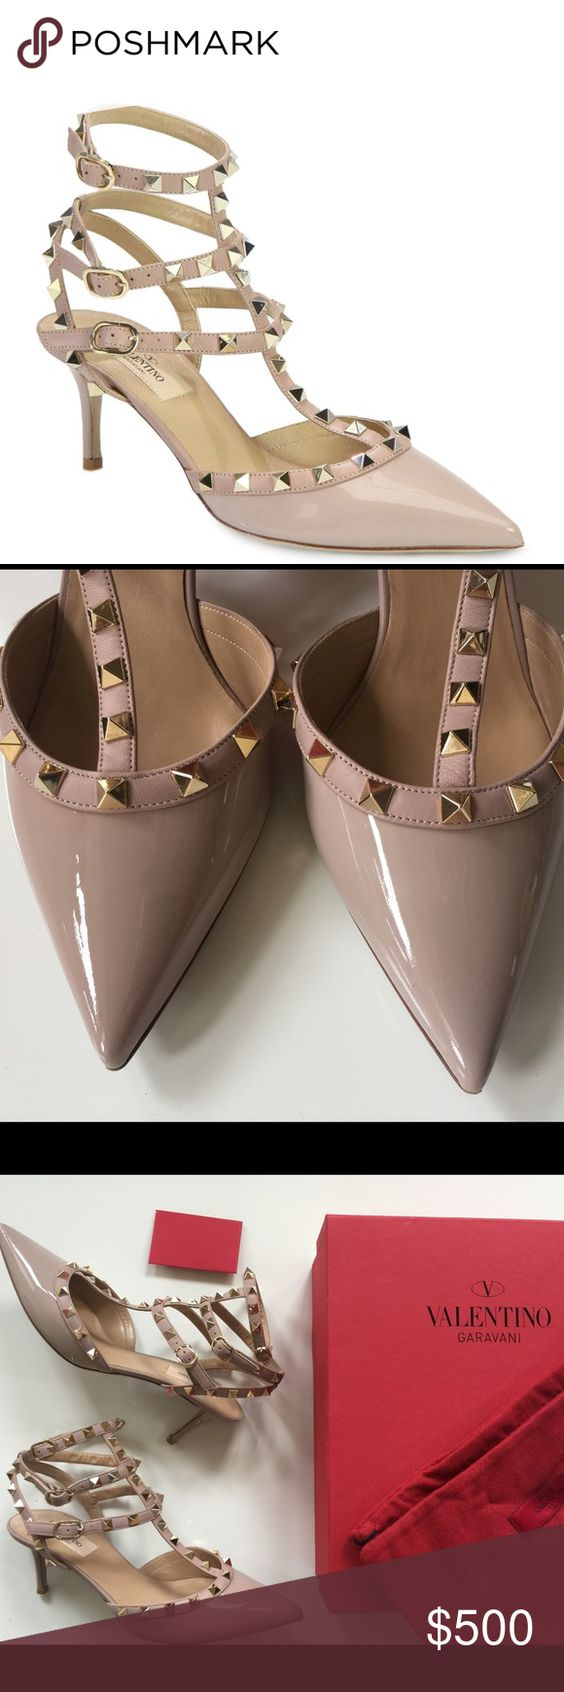 valentino rockstud patent leather pumps valentino rockstud kitten heel pumps color blush poudre patent size 39 they run small like new only wore once - Poudre Color Run